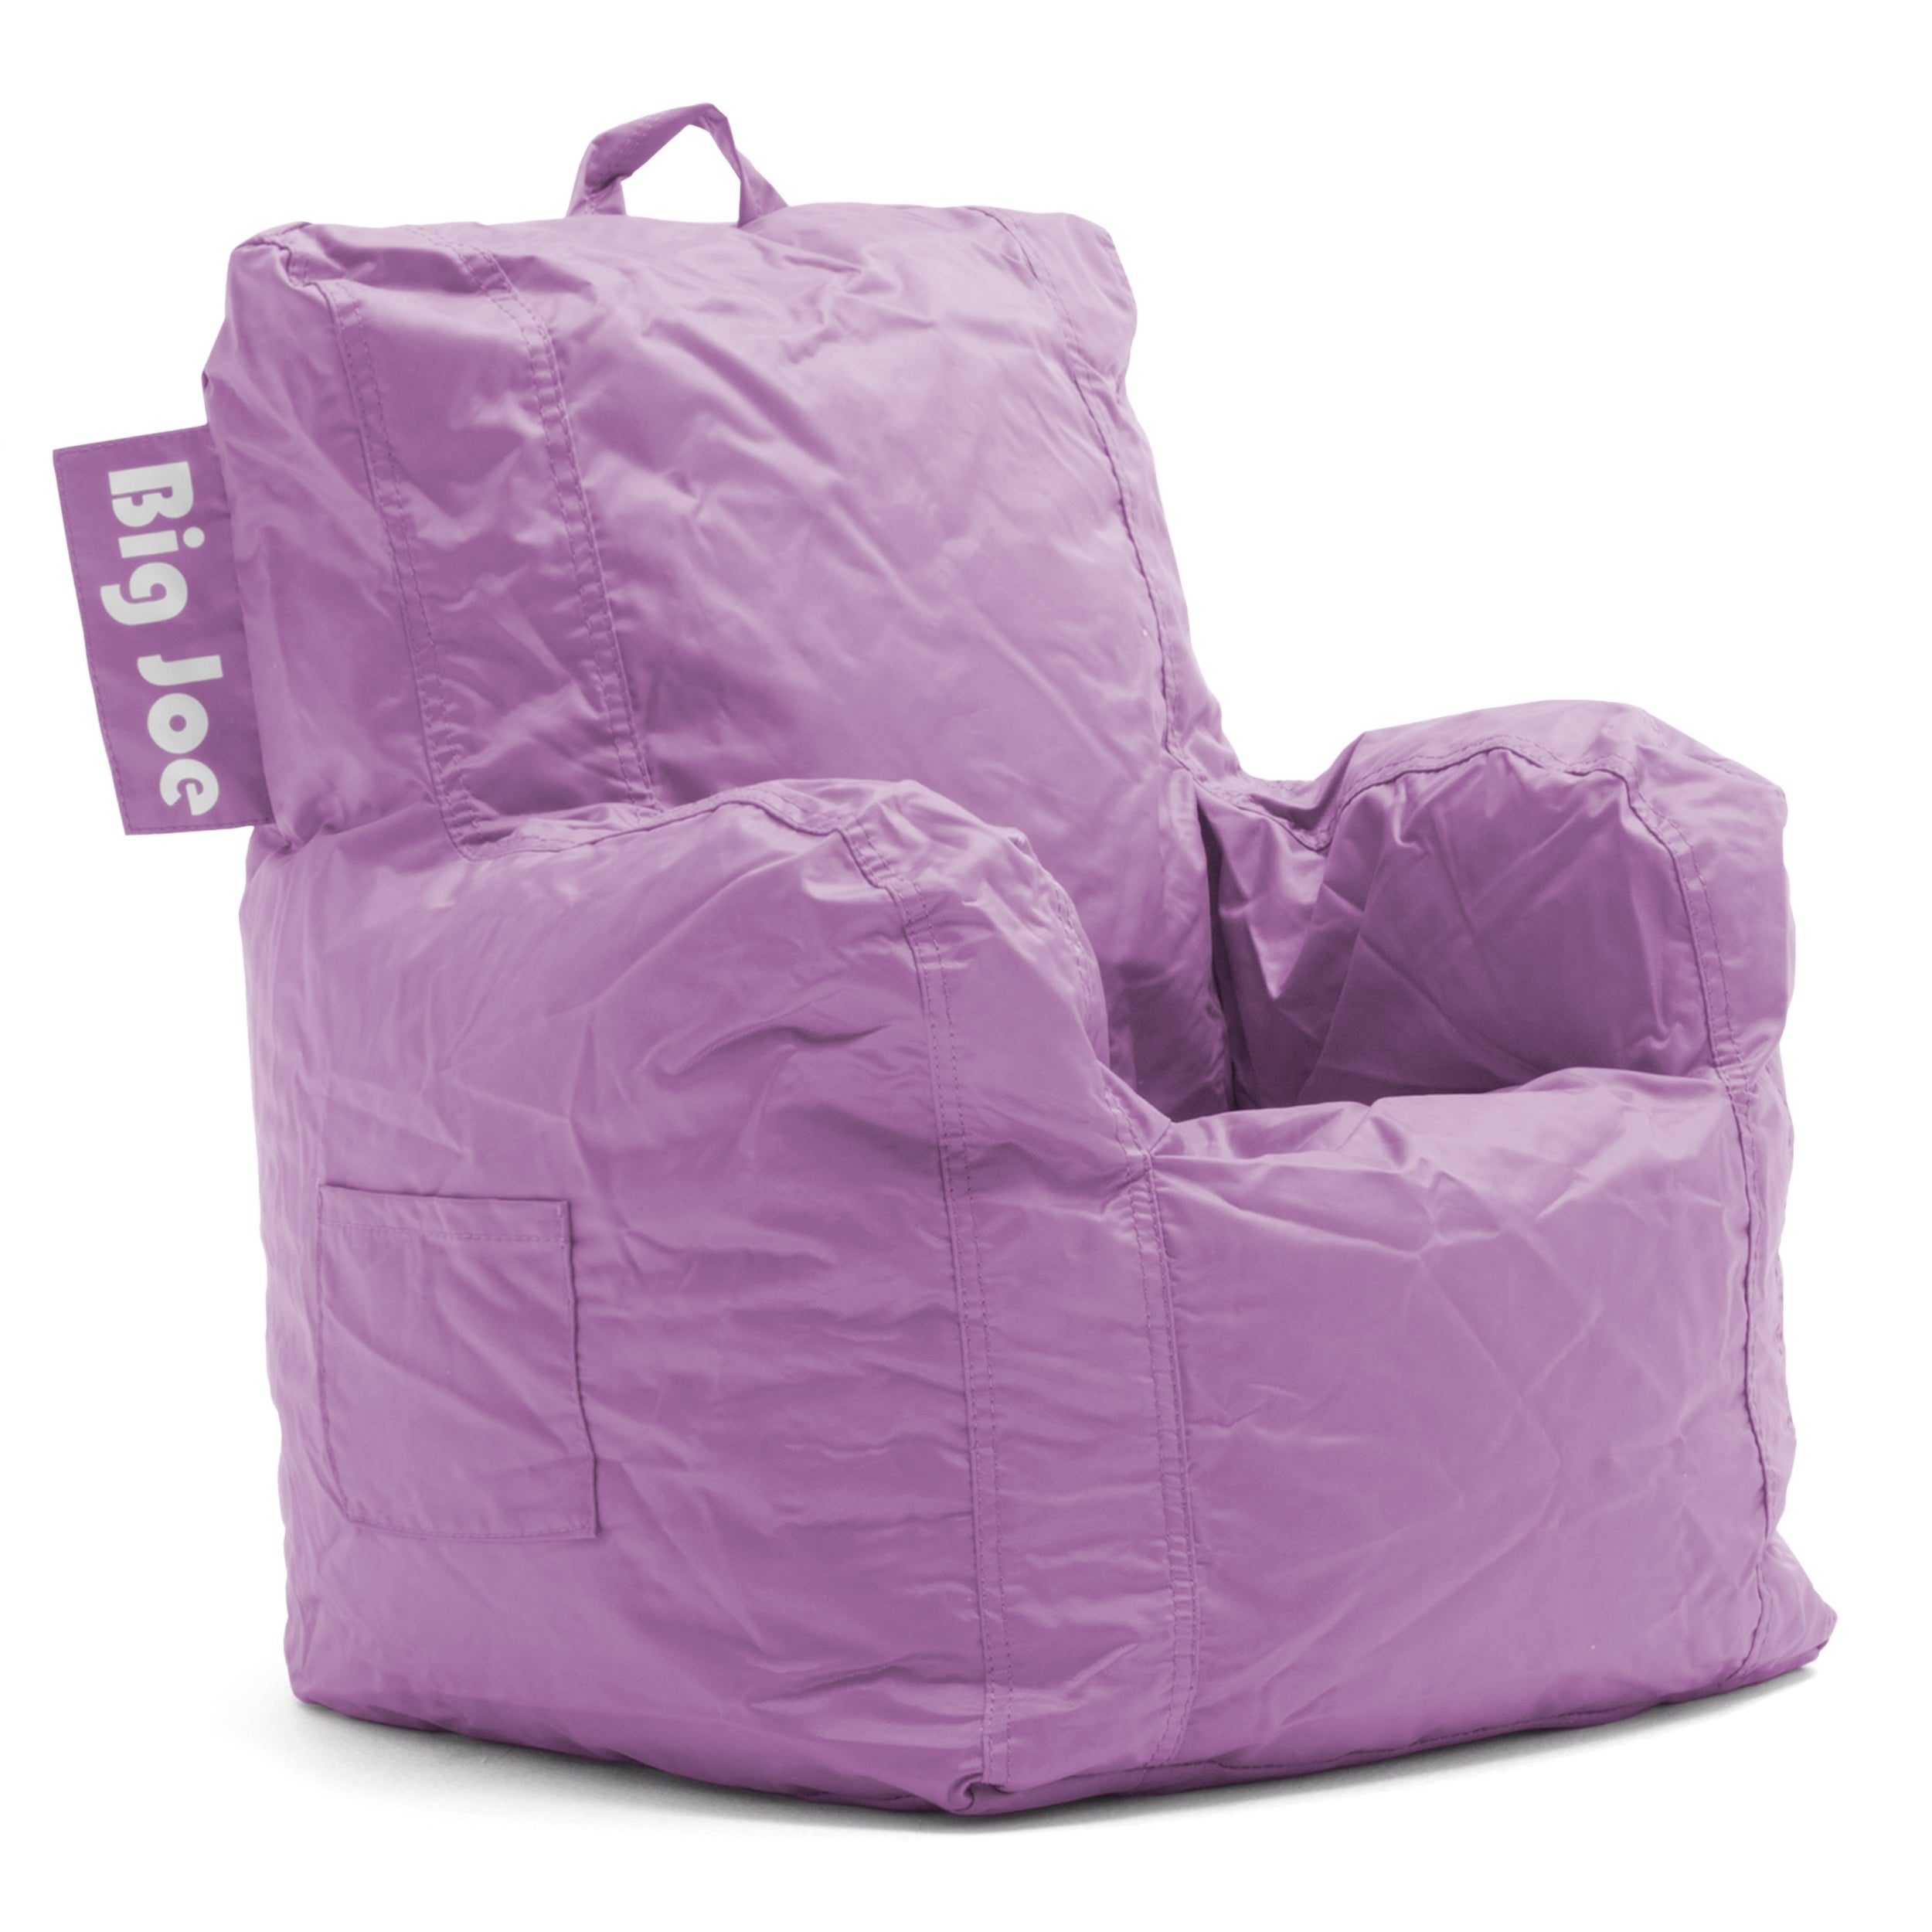 Shop Big Joe Kidu0027s Cuddle Bean Bag Chair   Free Shipping Today    Overstock.com   19759201